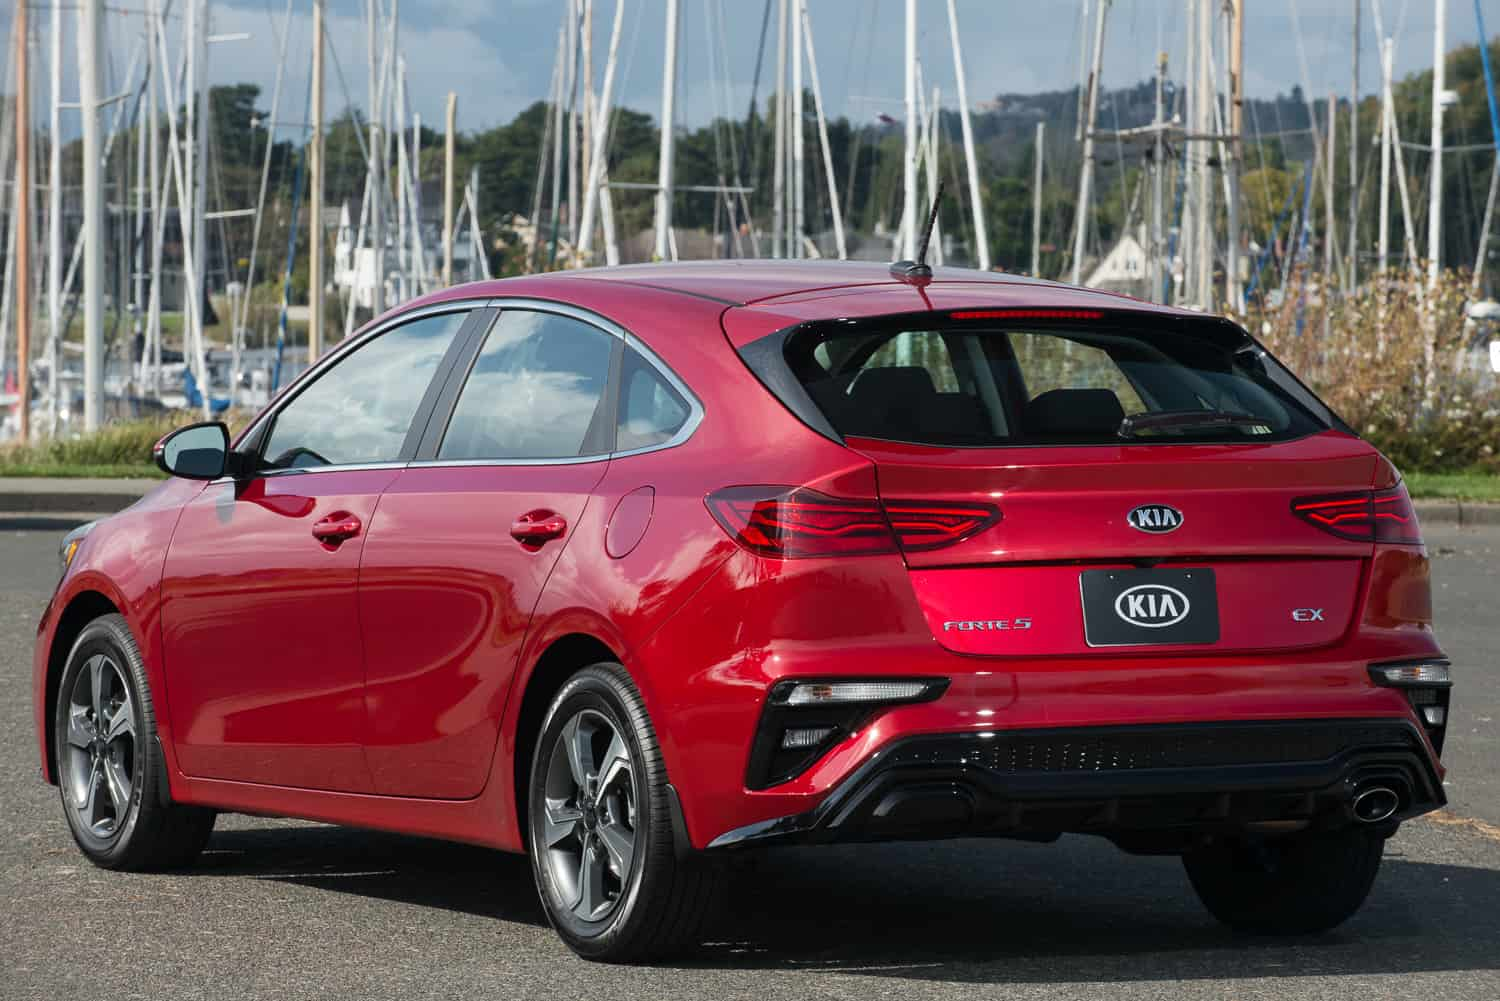 2020 Kia Forte5 hatchback review